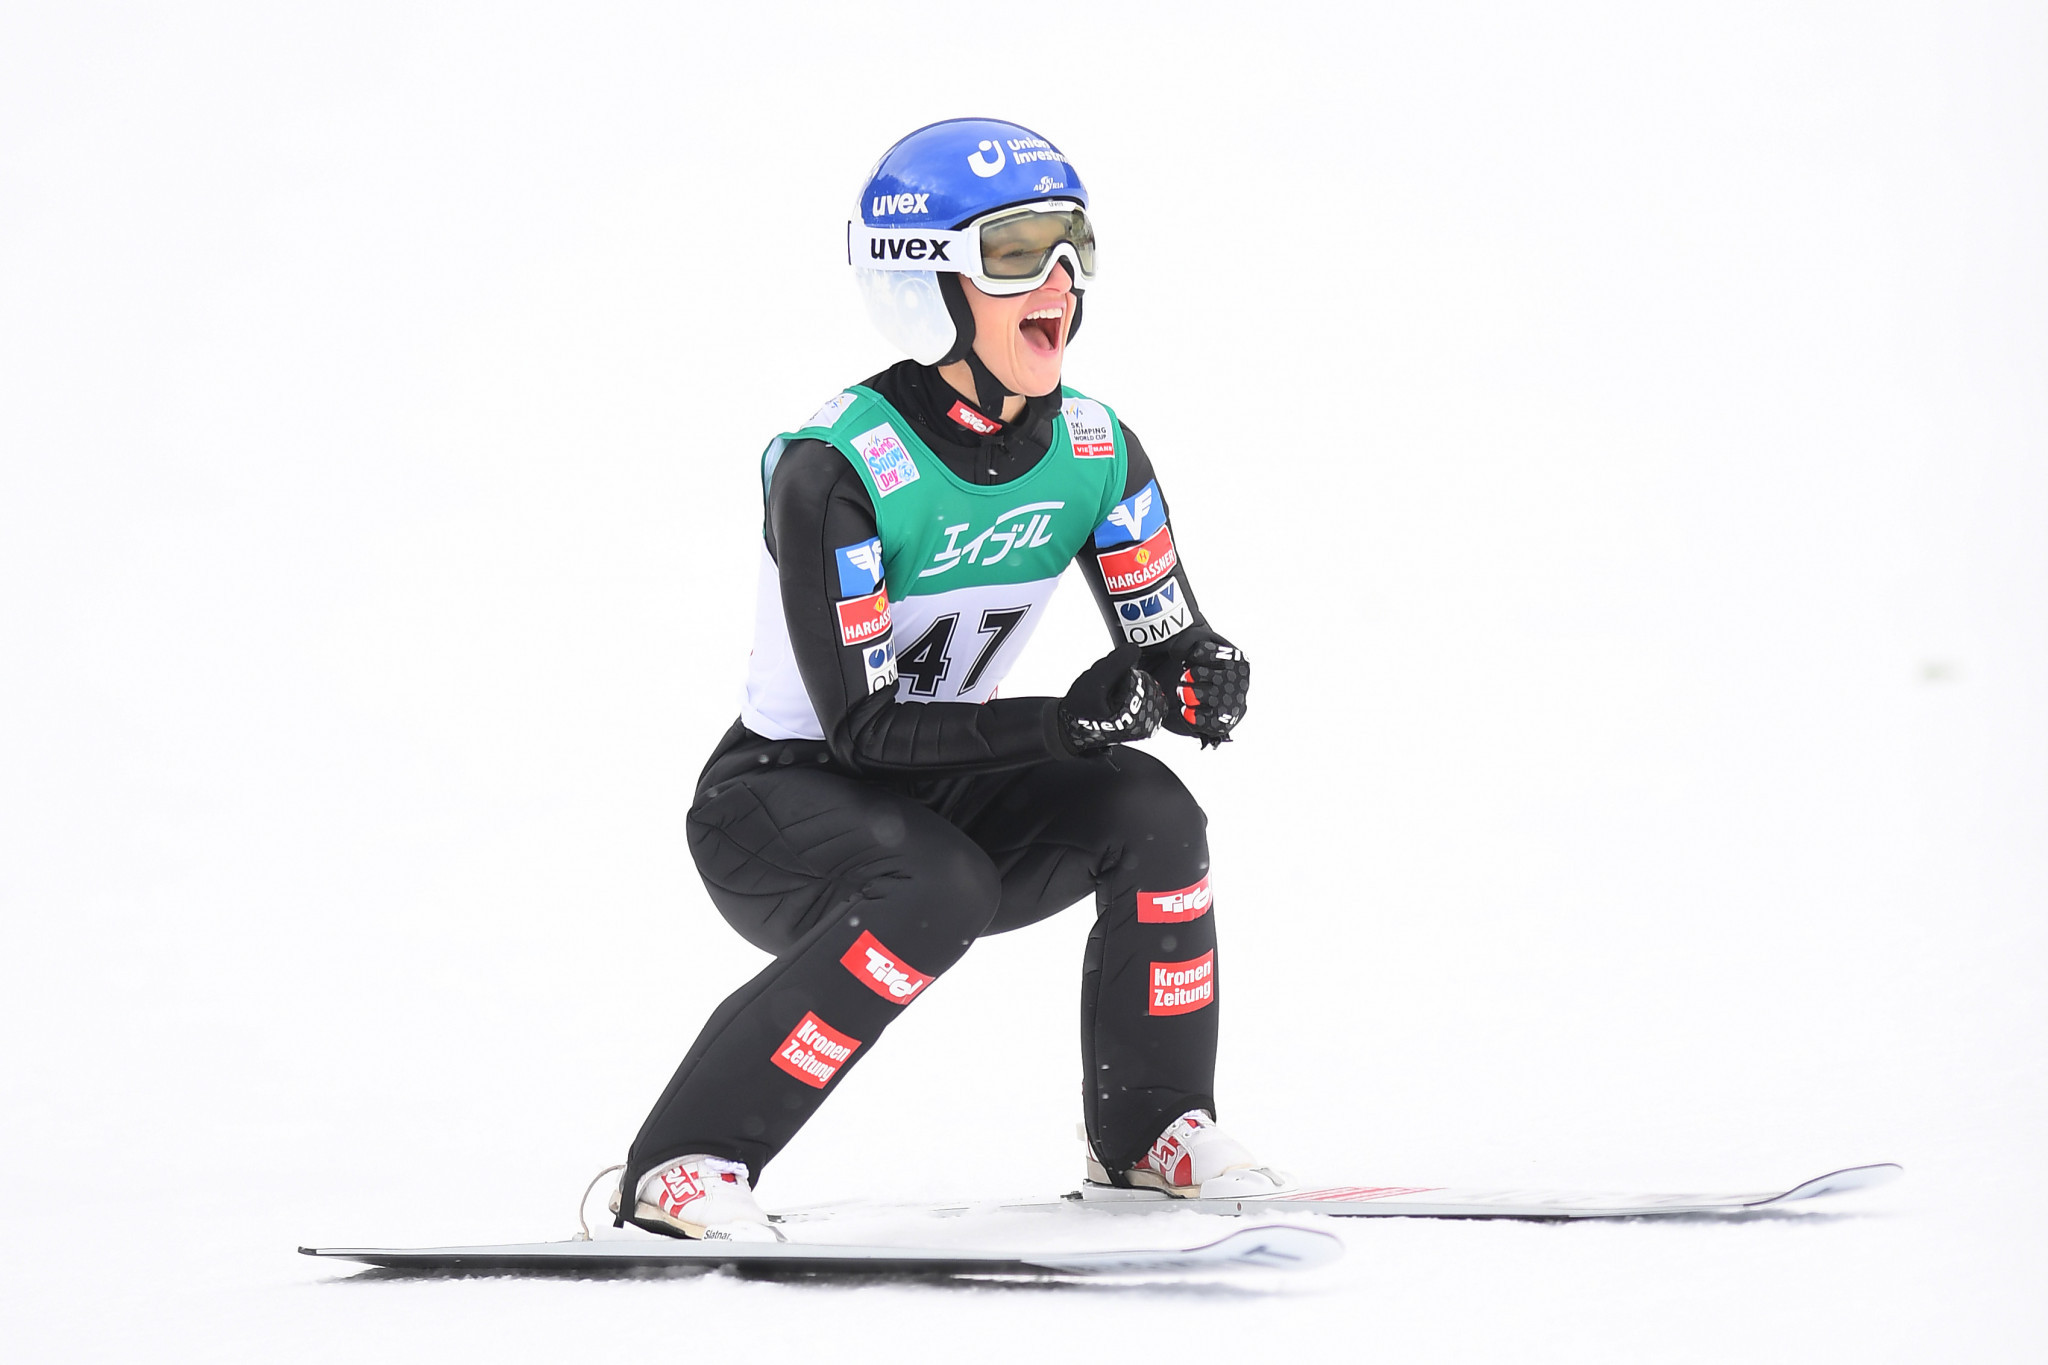 Pinkelnig captures maiden Ski Jumping World Cup title in Sapporo as Lundby breaks hill record